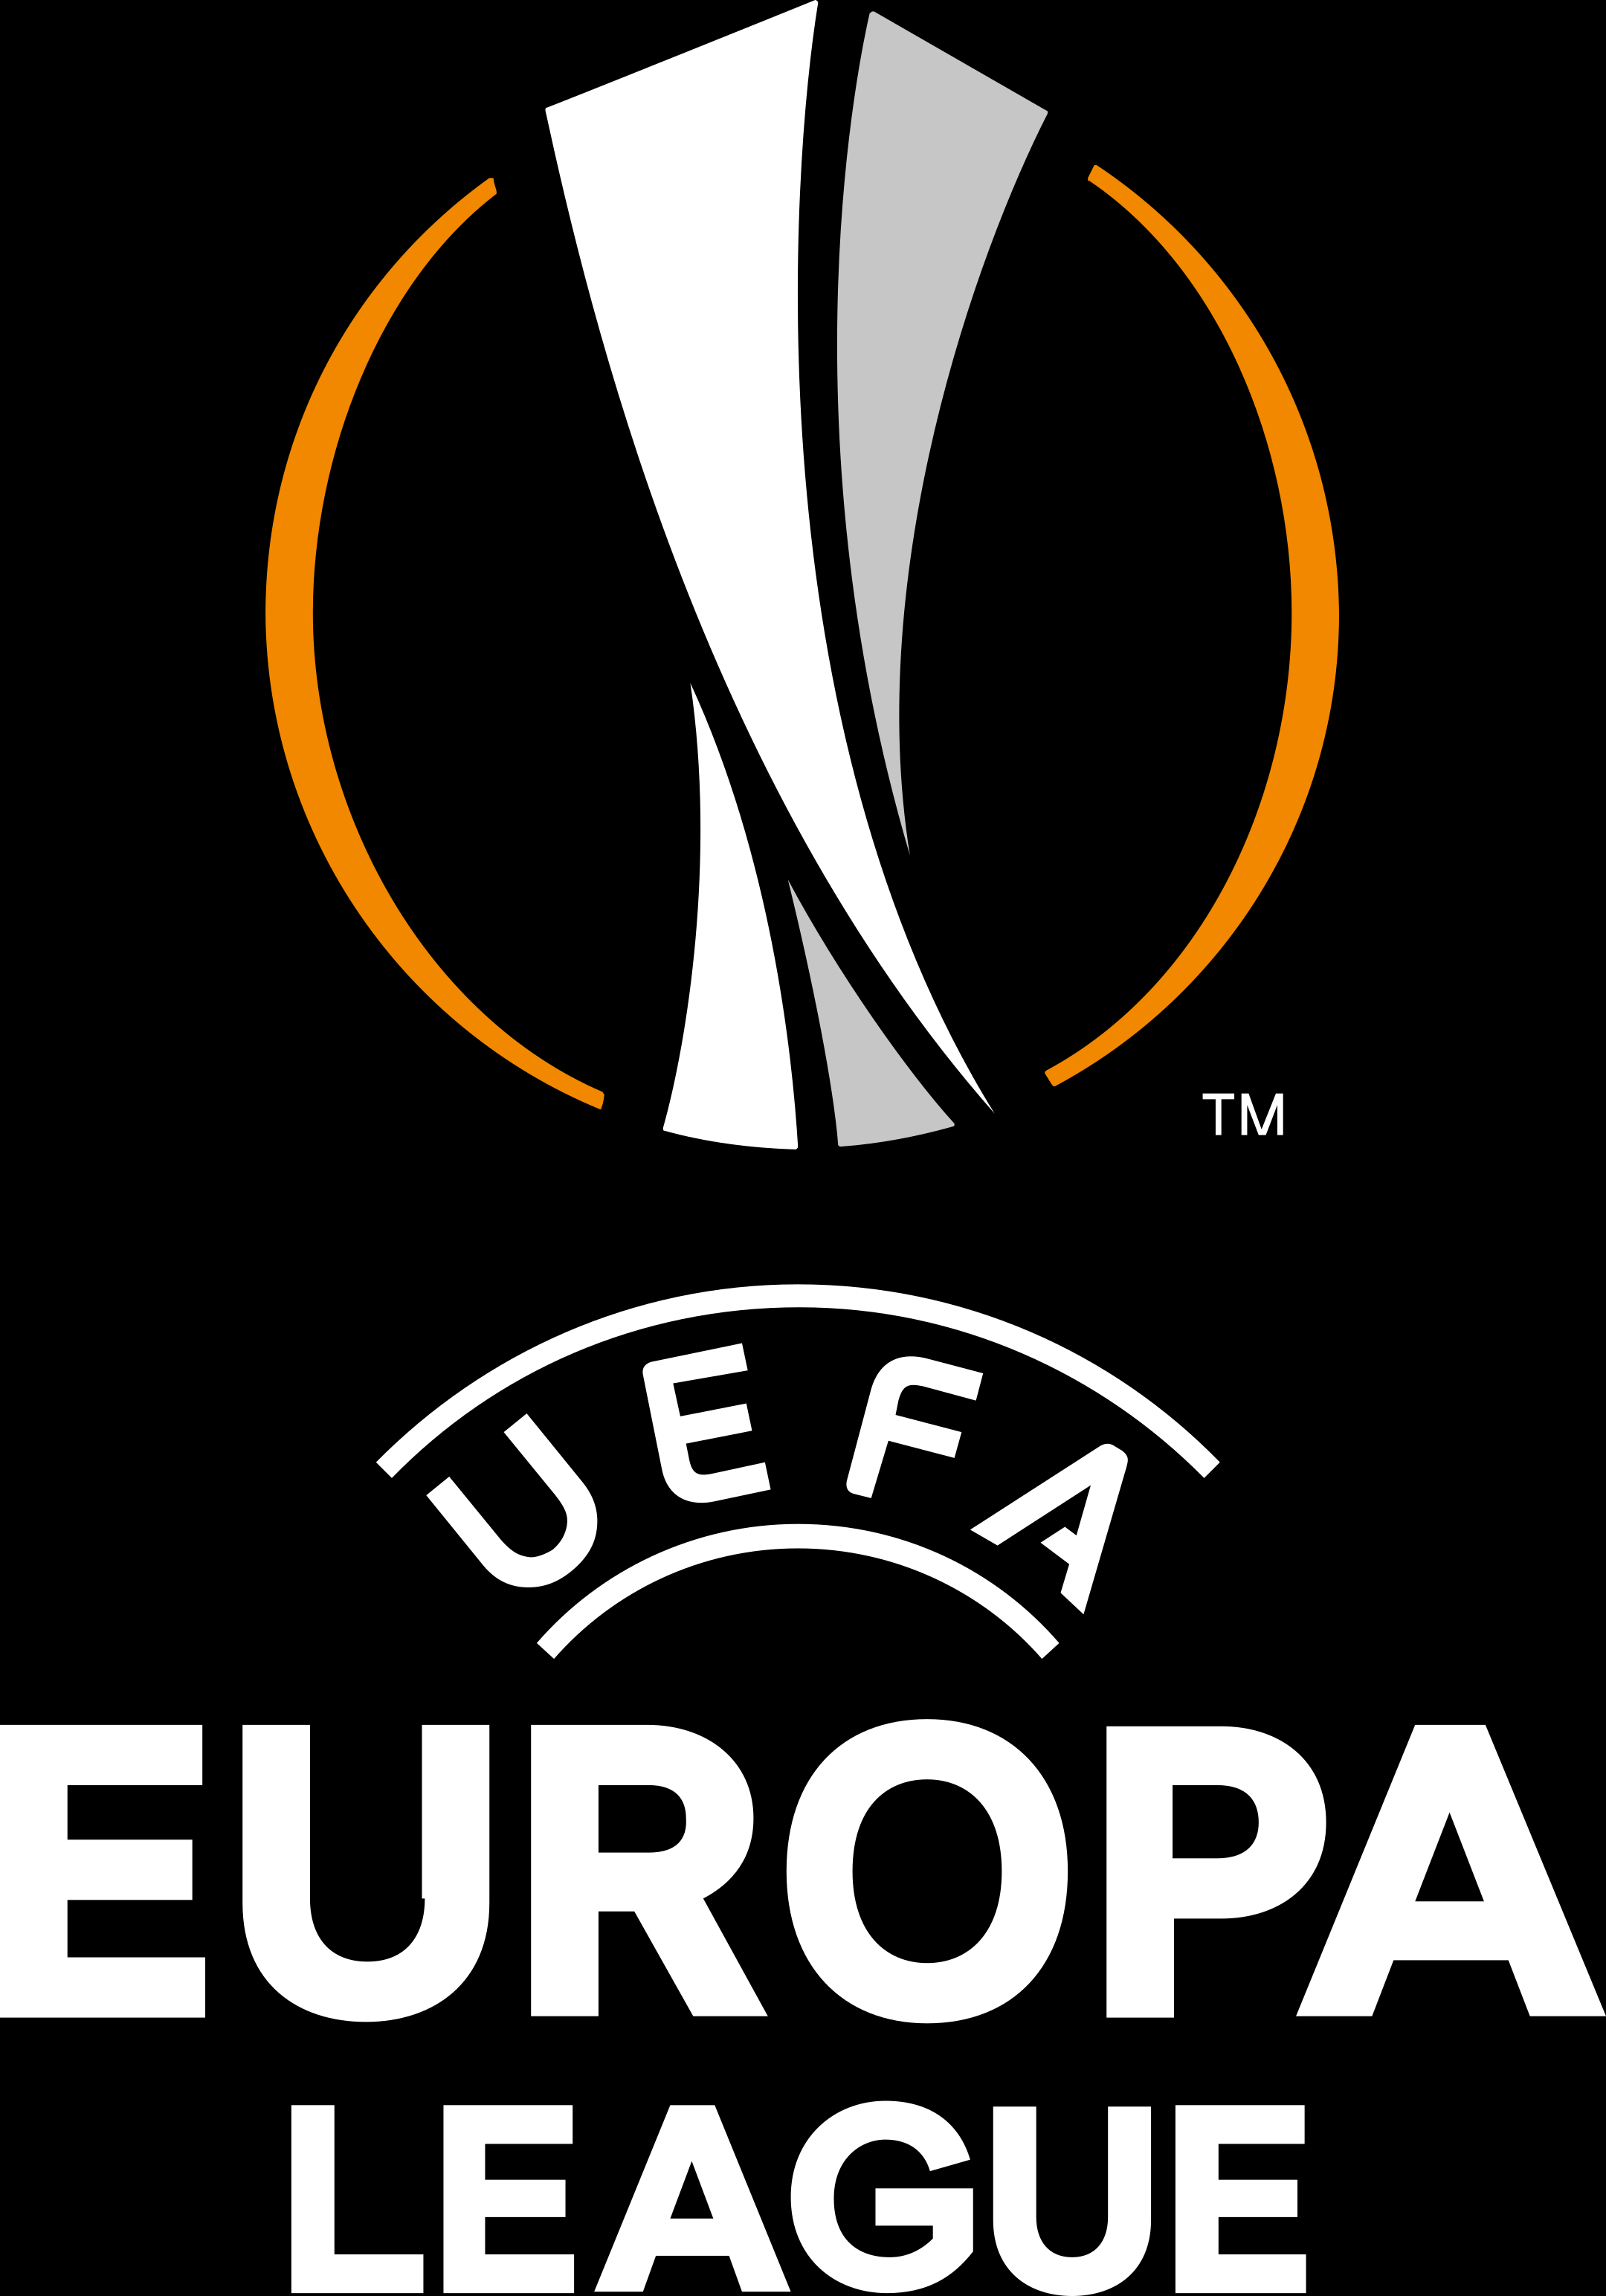 europa league logo 5 - UEFA Europa League Logo